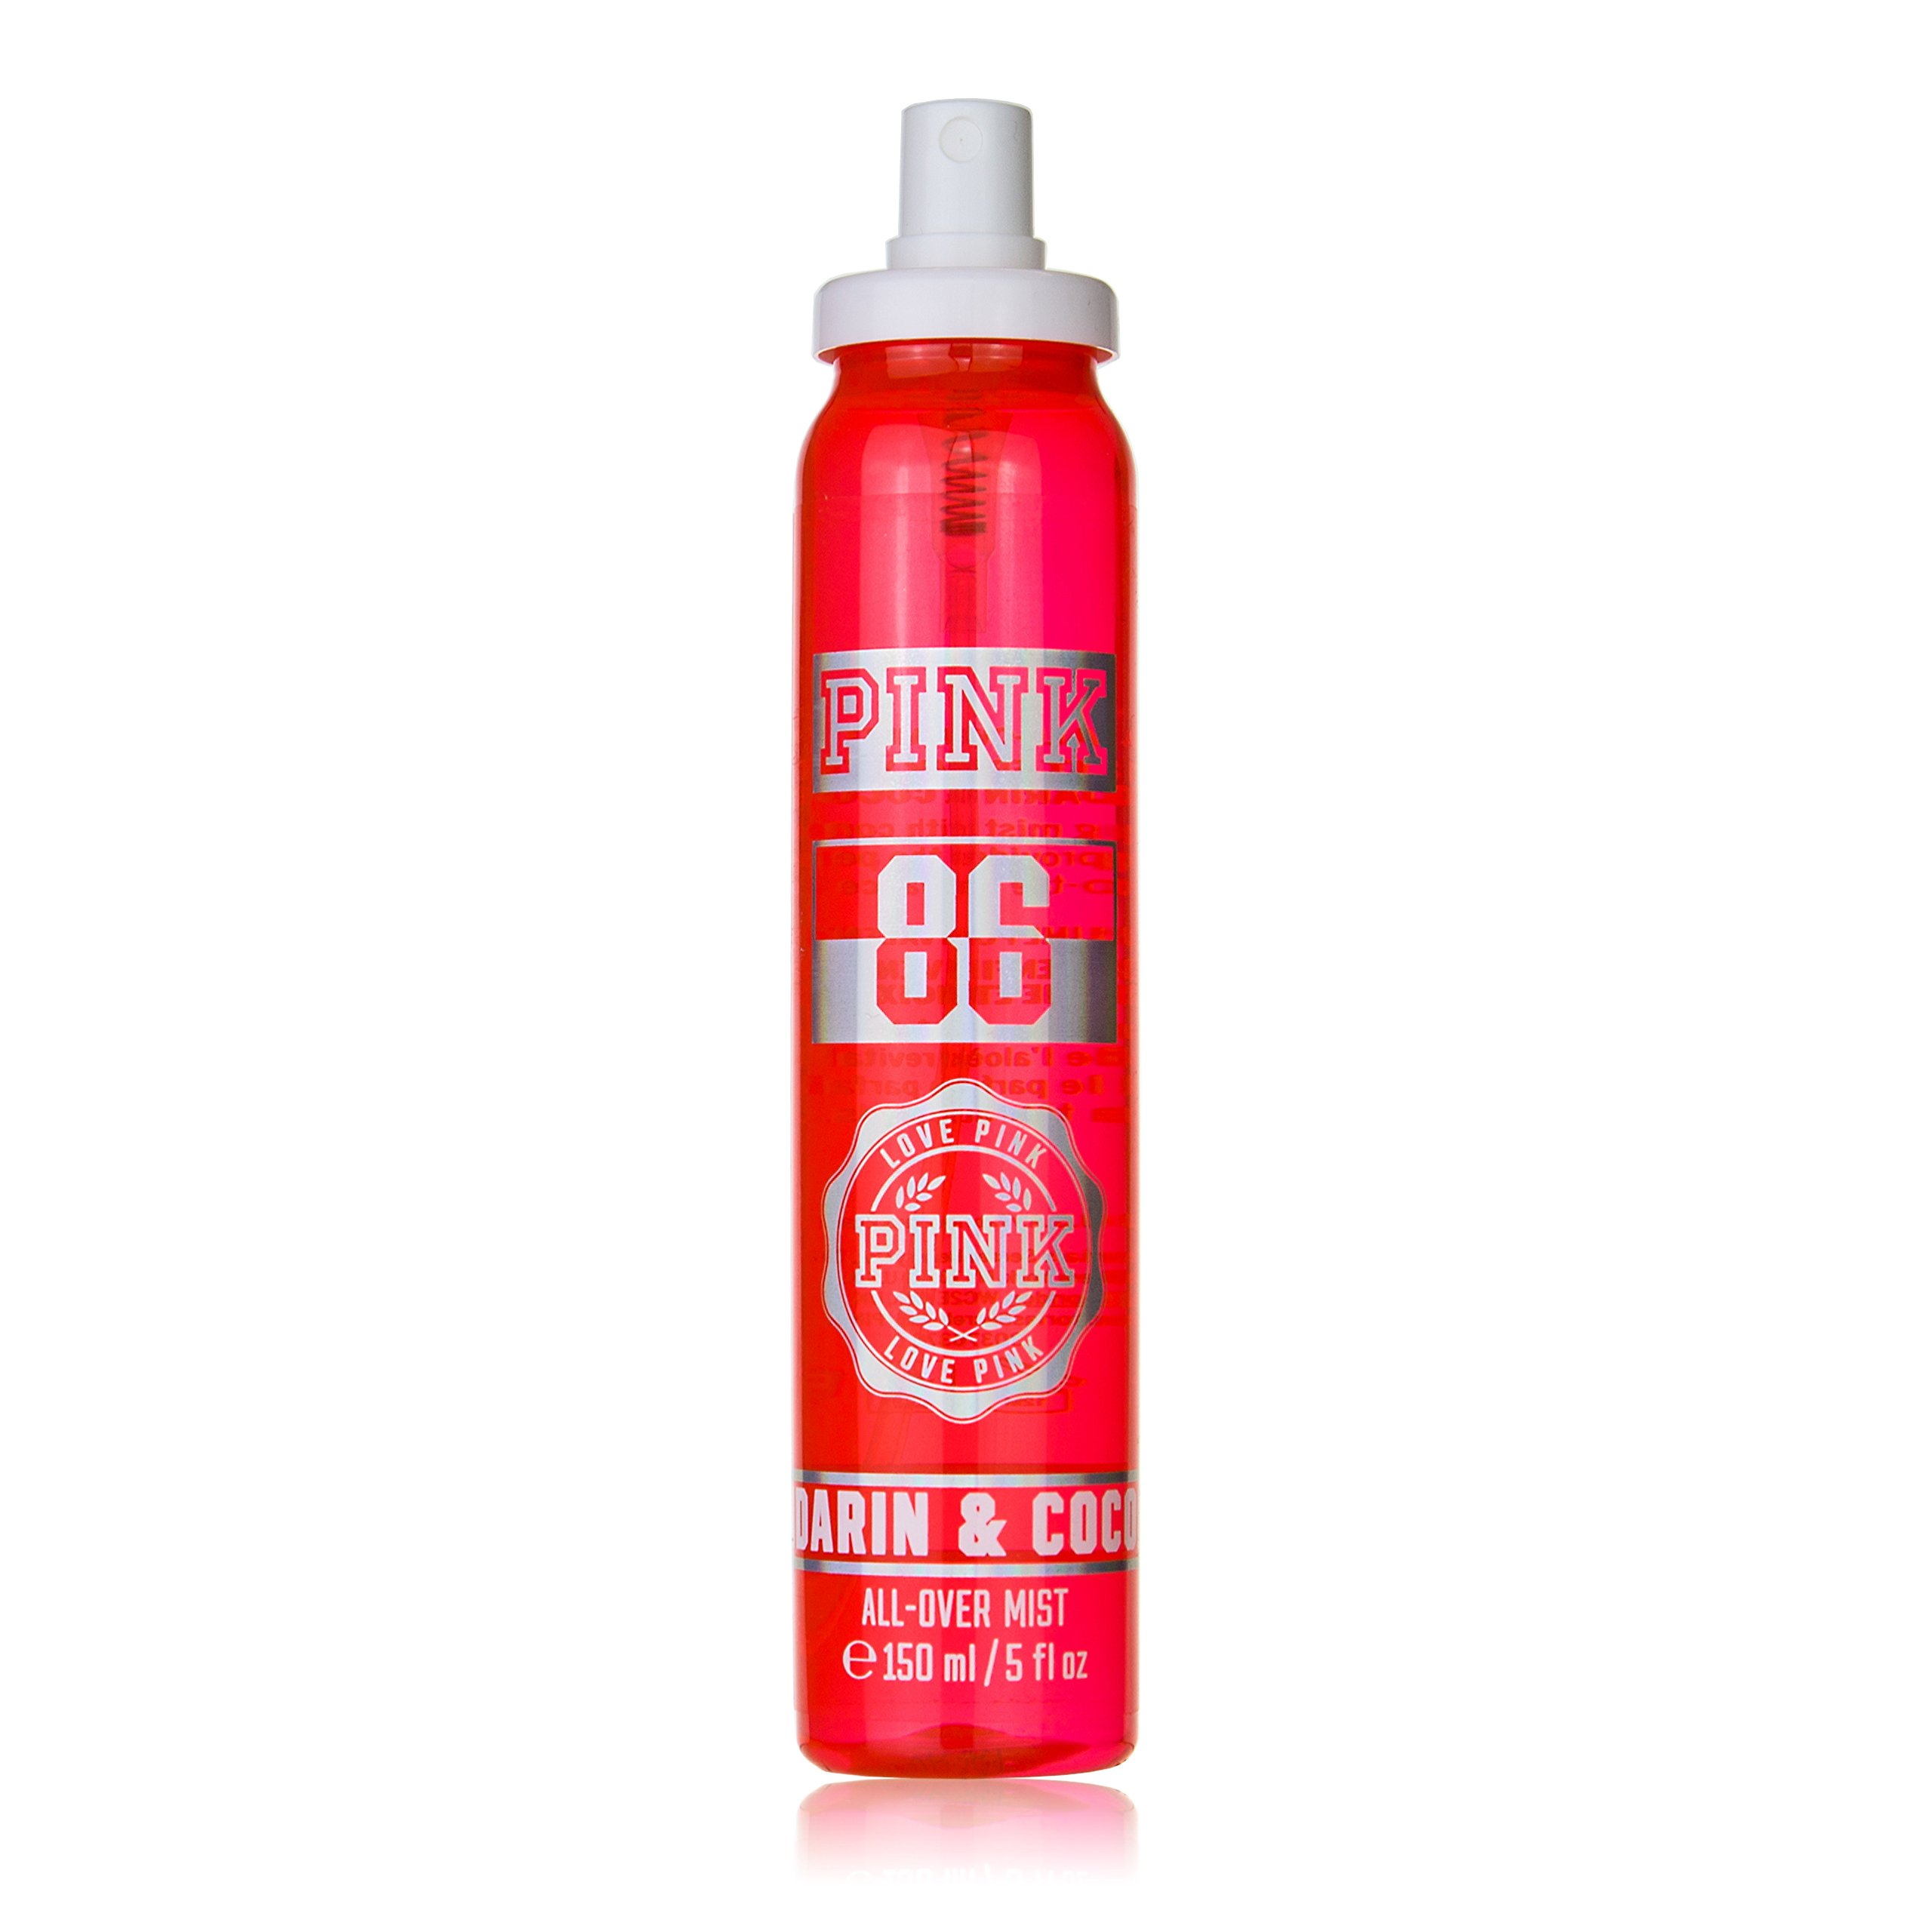 98d7f558c9 Amazon.com   Victoria s Secret PINK All-over Mist Mandarin   Coconut    Beauty